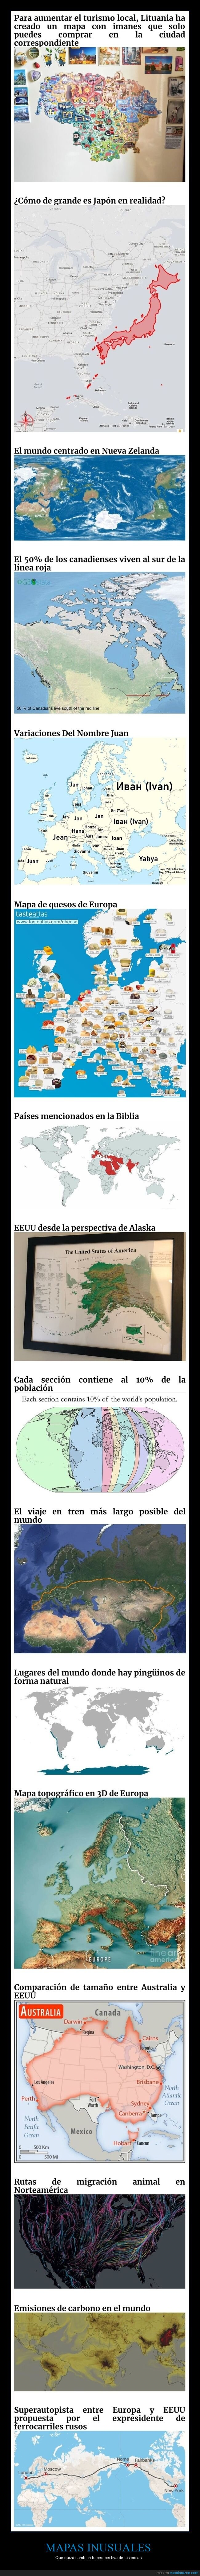 inusuales,mapas,perspectiva